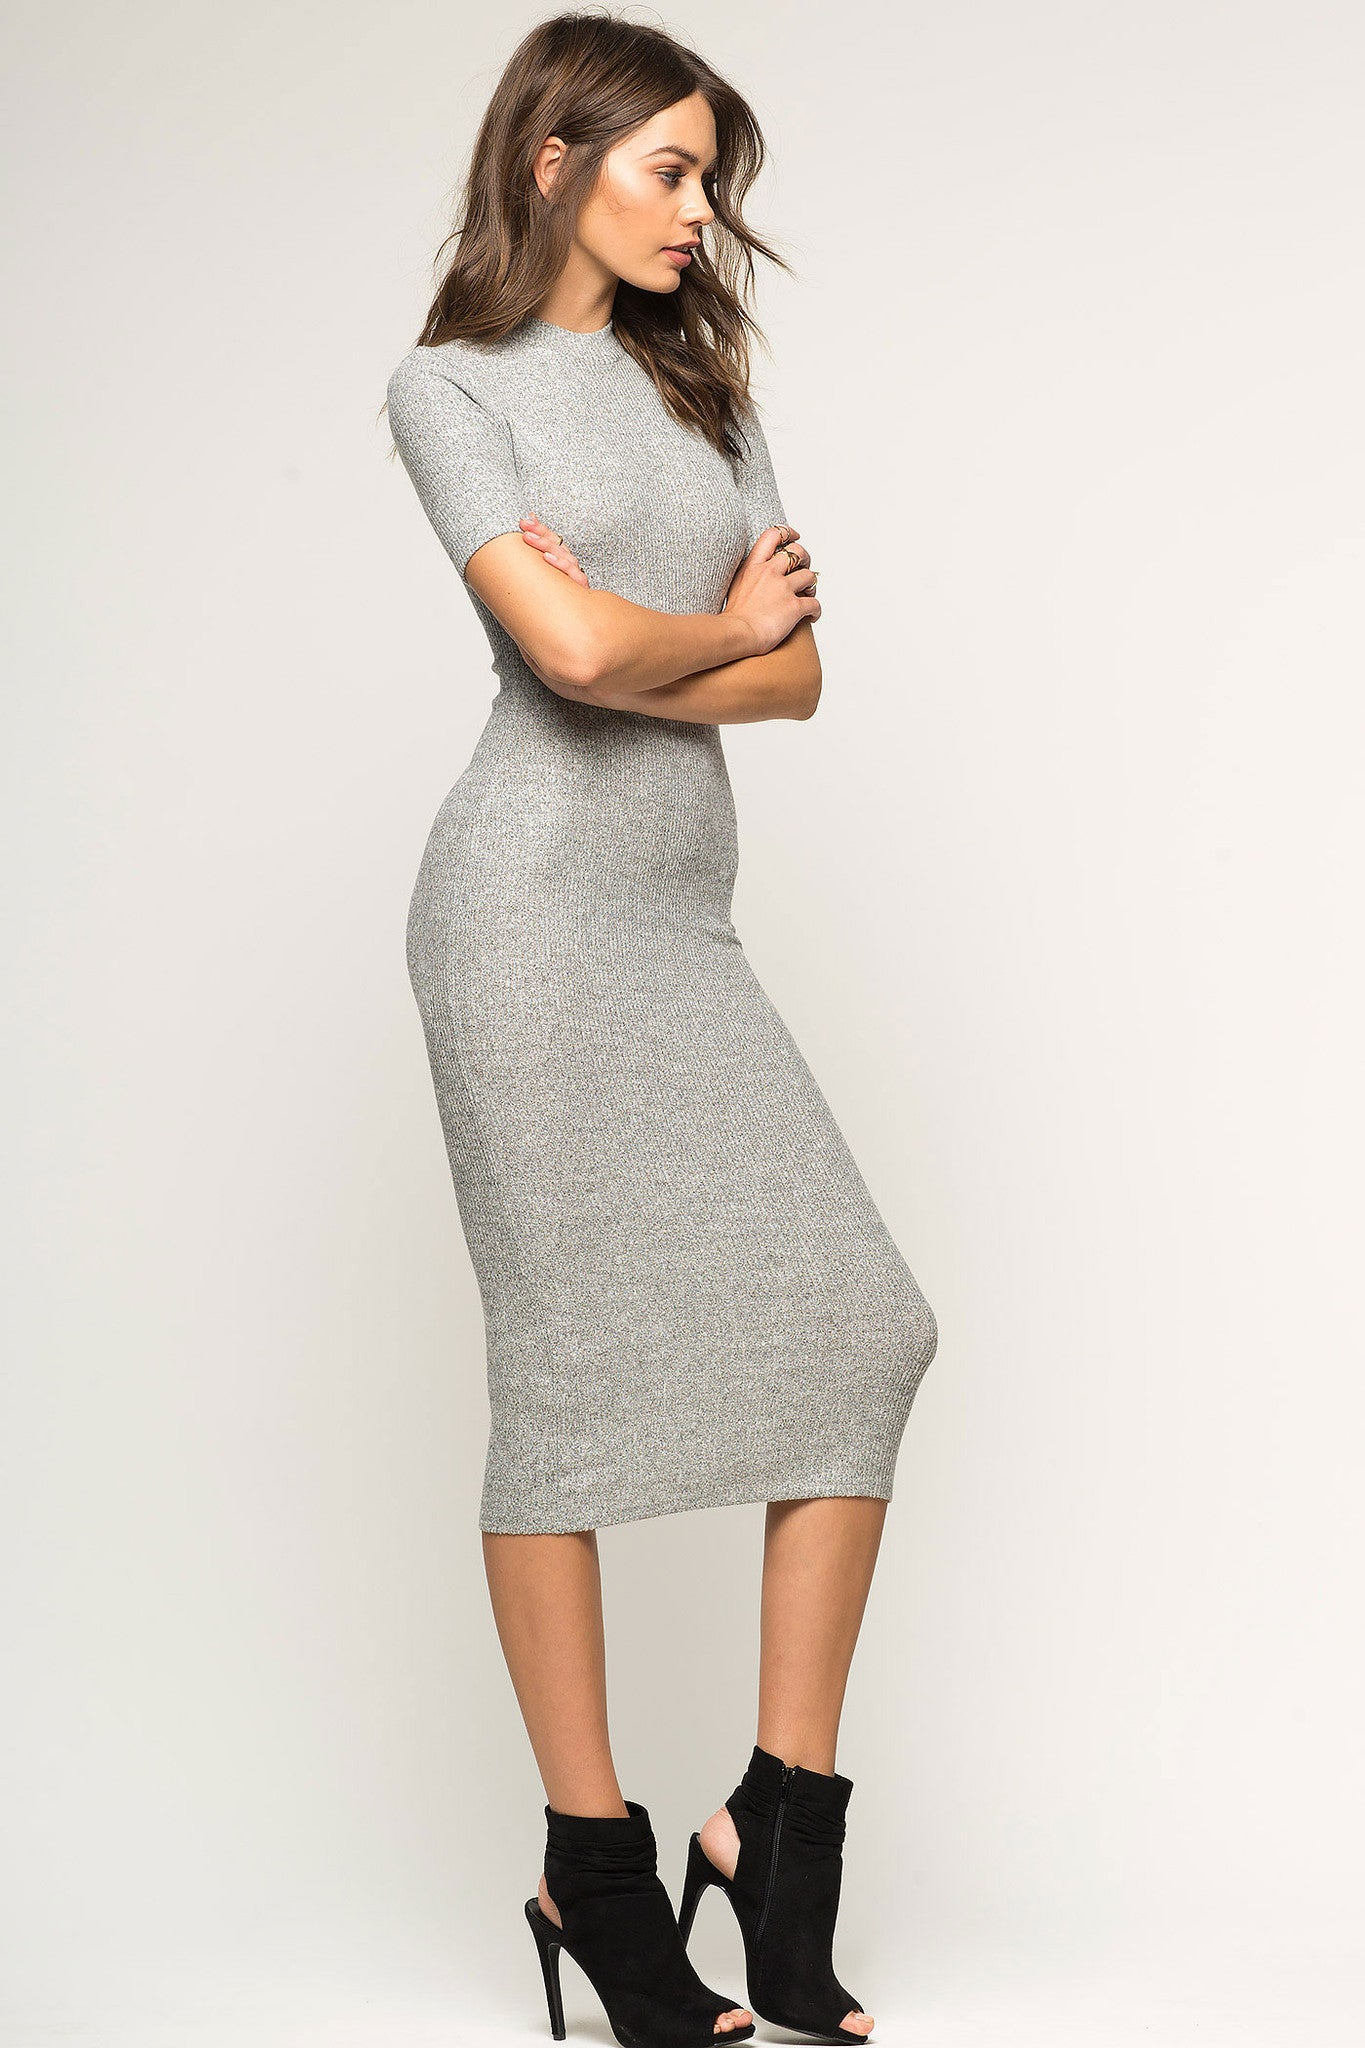 Womens casual street style short sleeve bodycon midi dress in light heather grey. Front view.